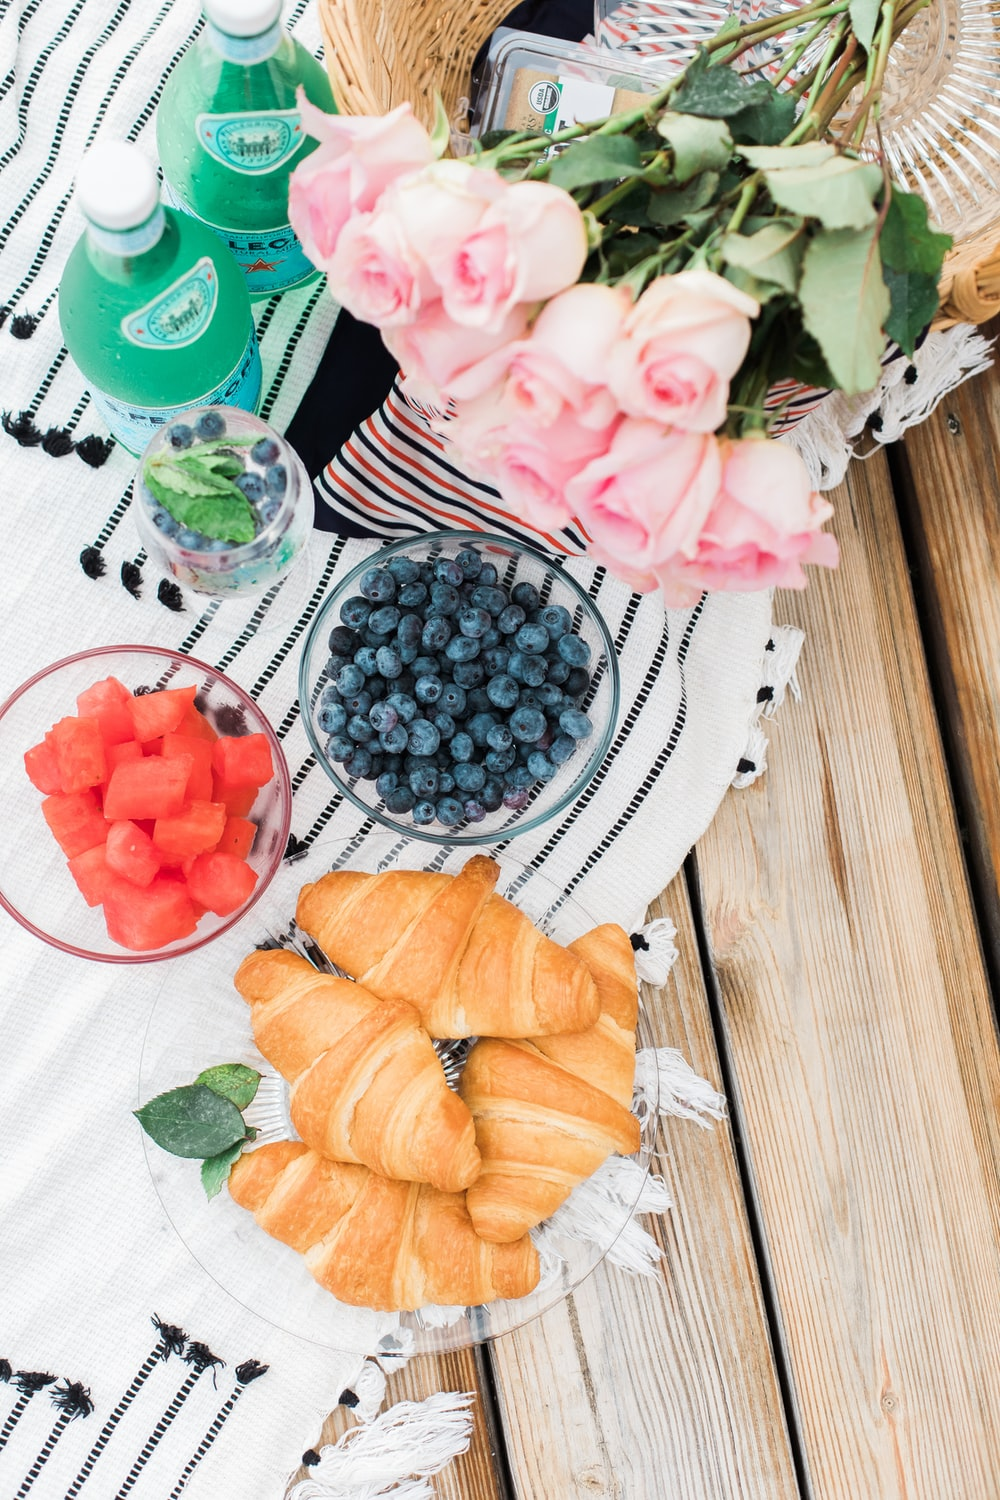 two bowl of fruits near plated breads